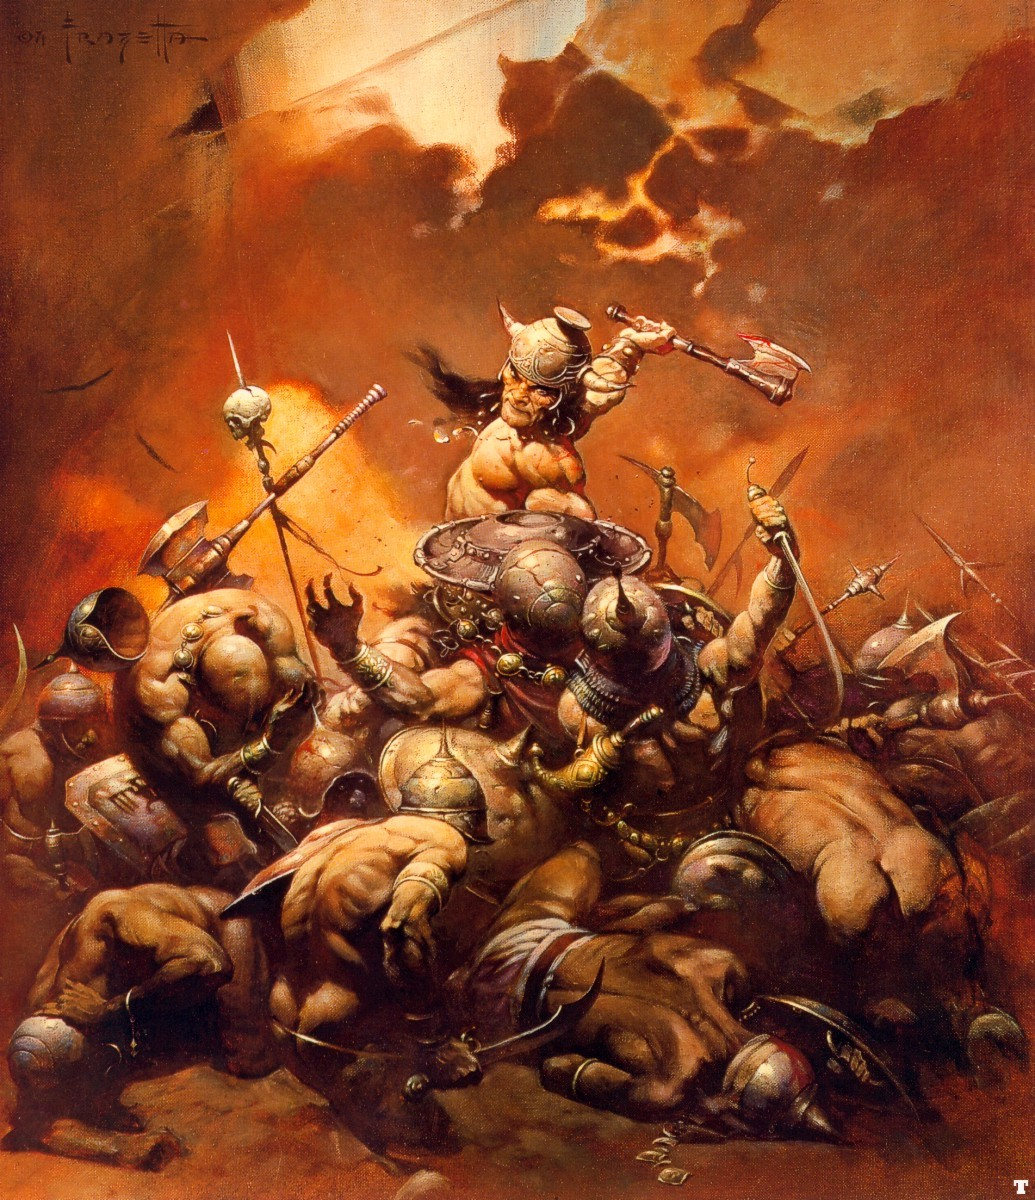 frankfrazetta-conan-the-destroyer-1971